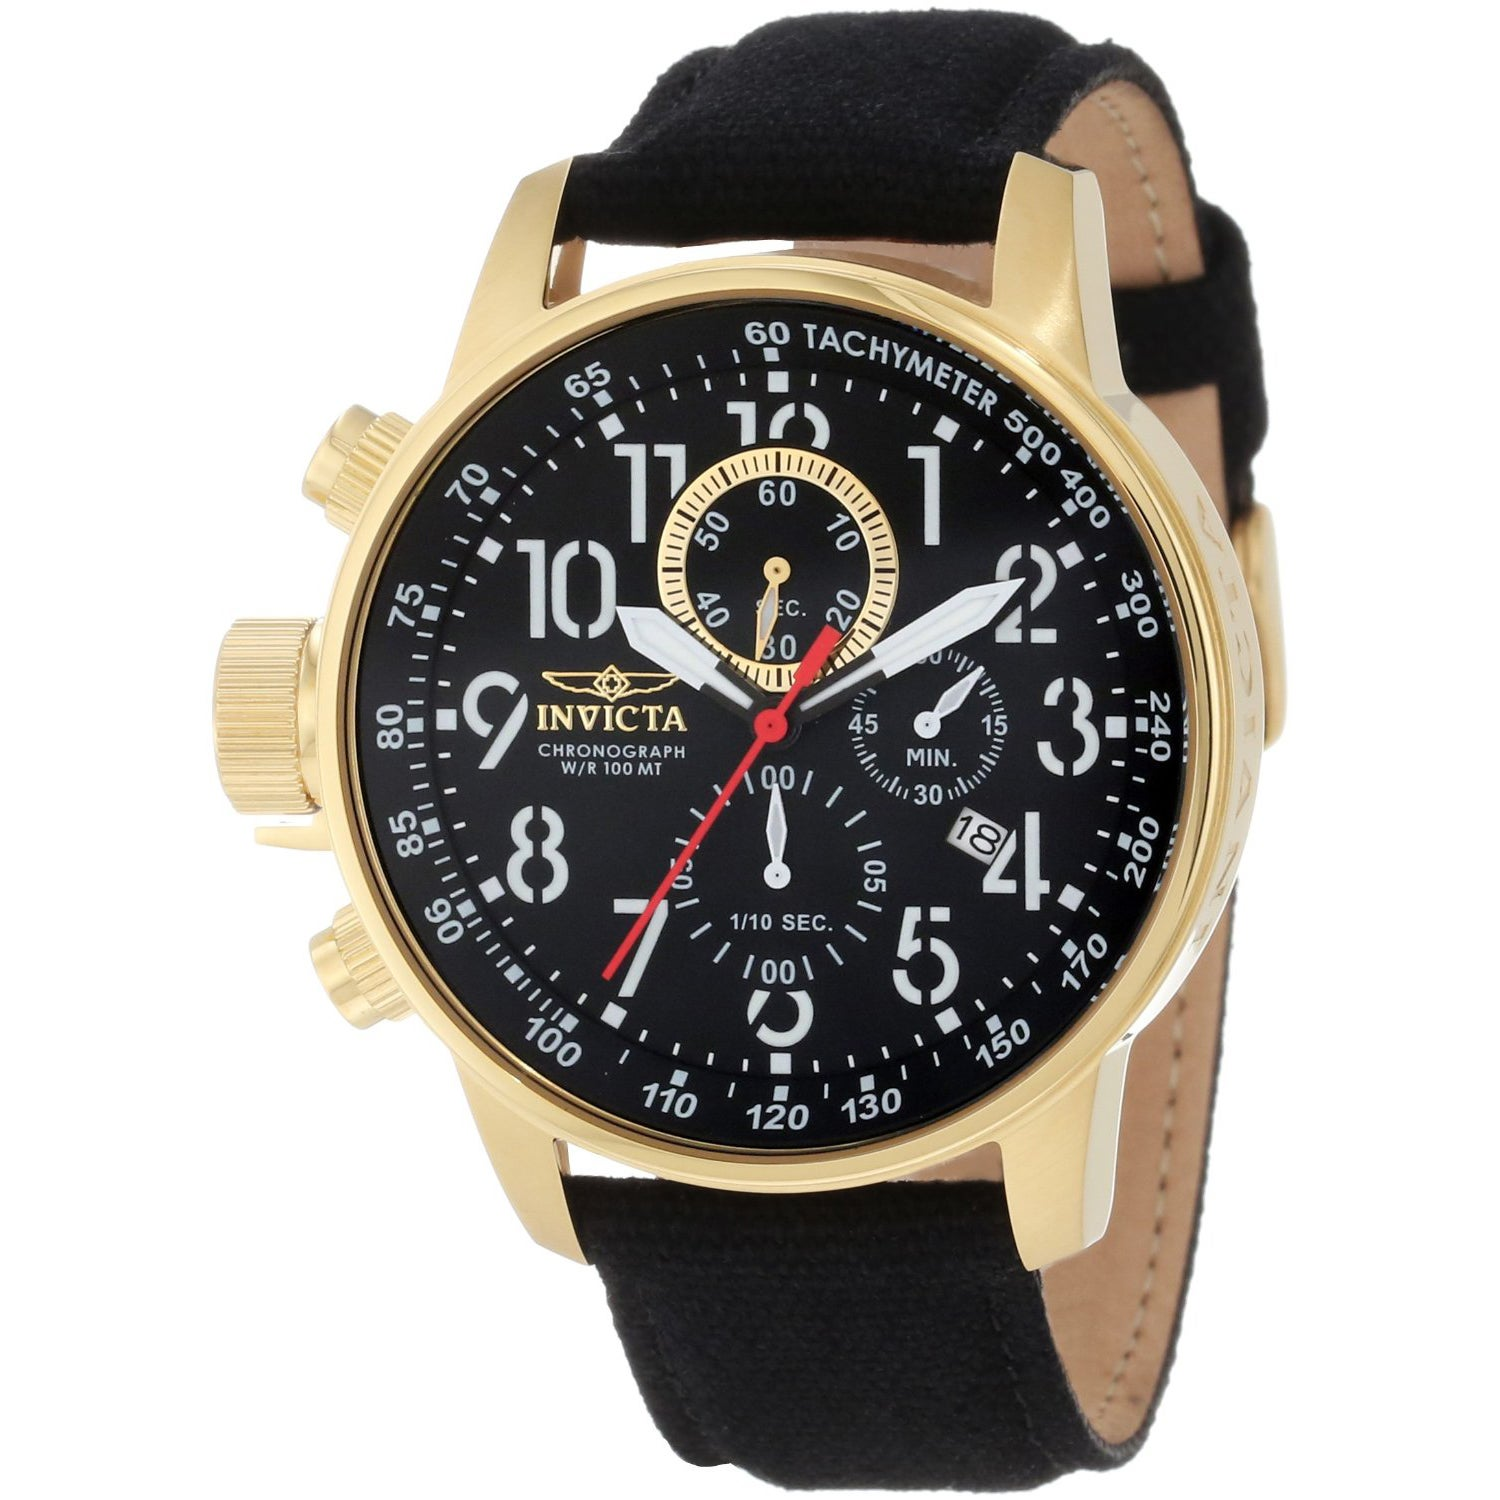 Invicta Men's 1515 Chronograph Black/ Goldtone Watch (Inv...